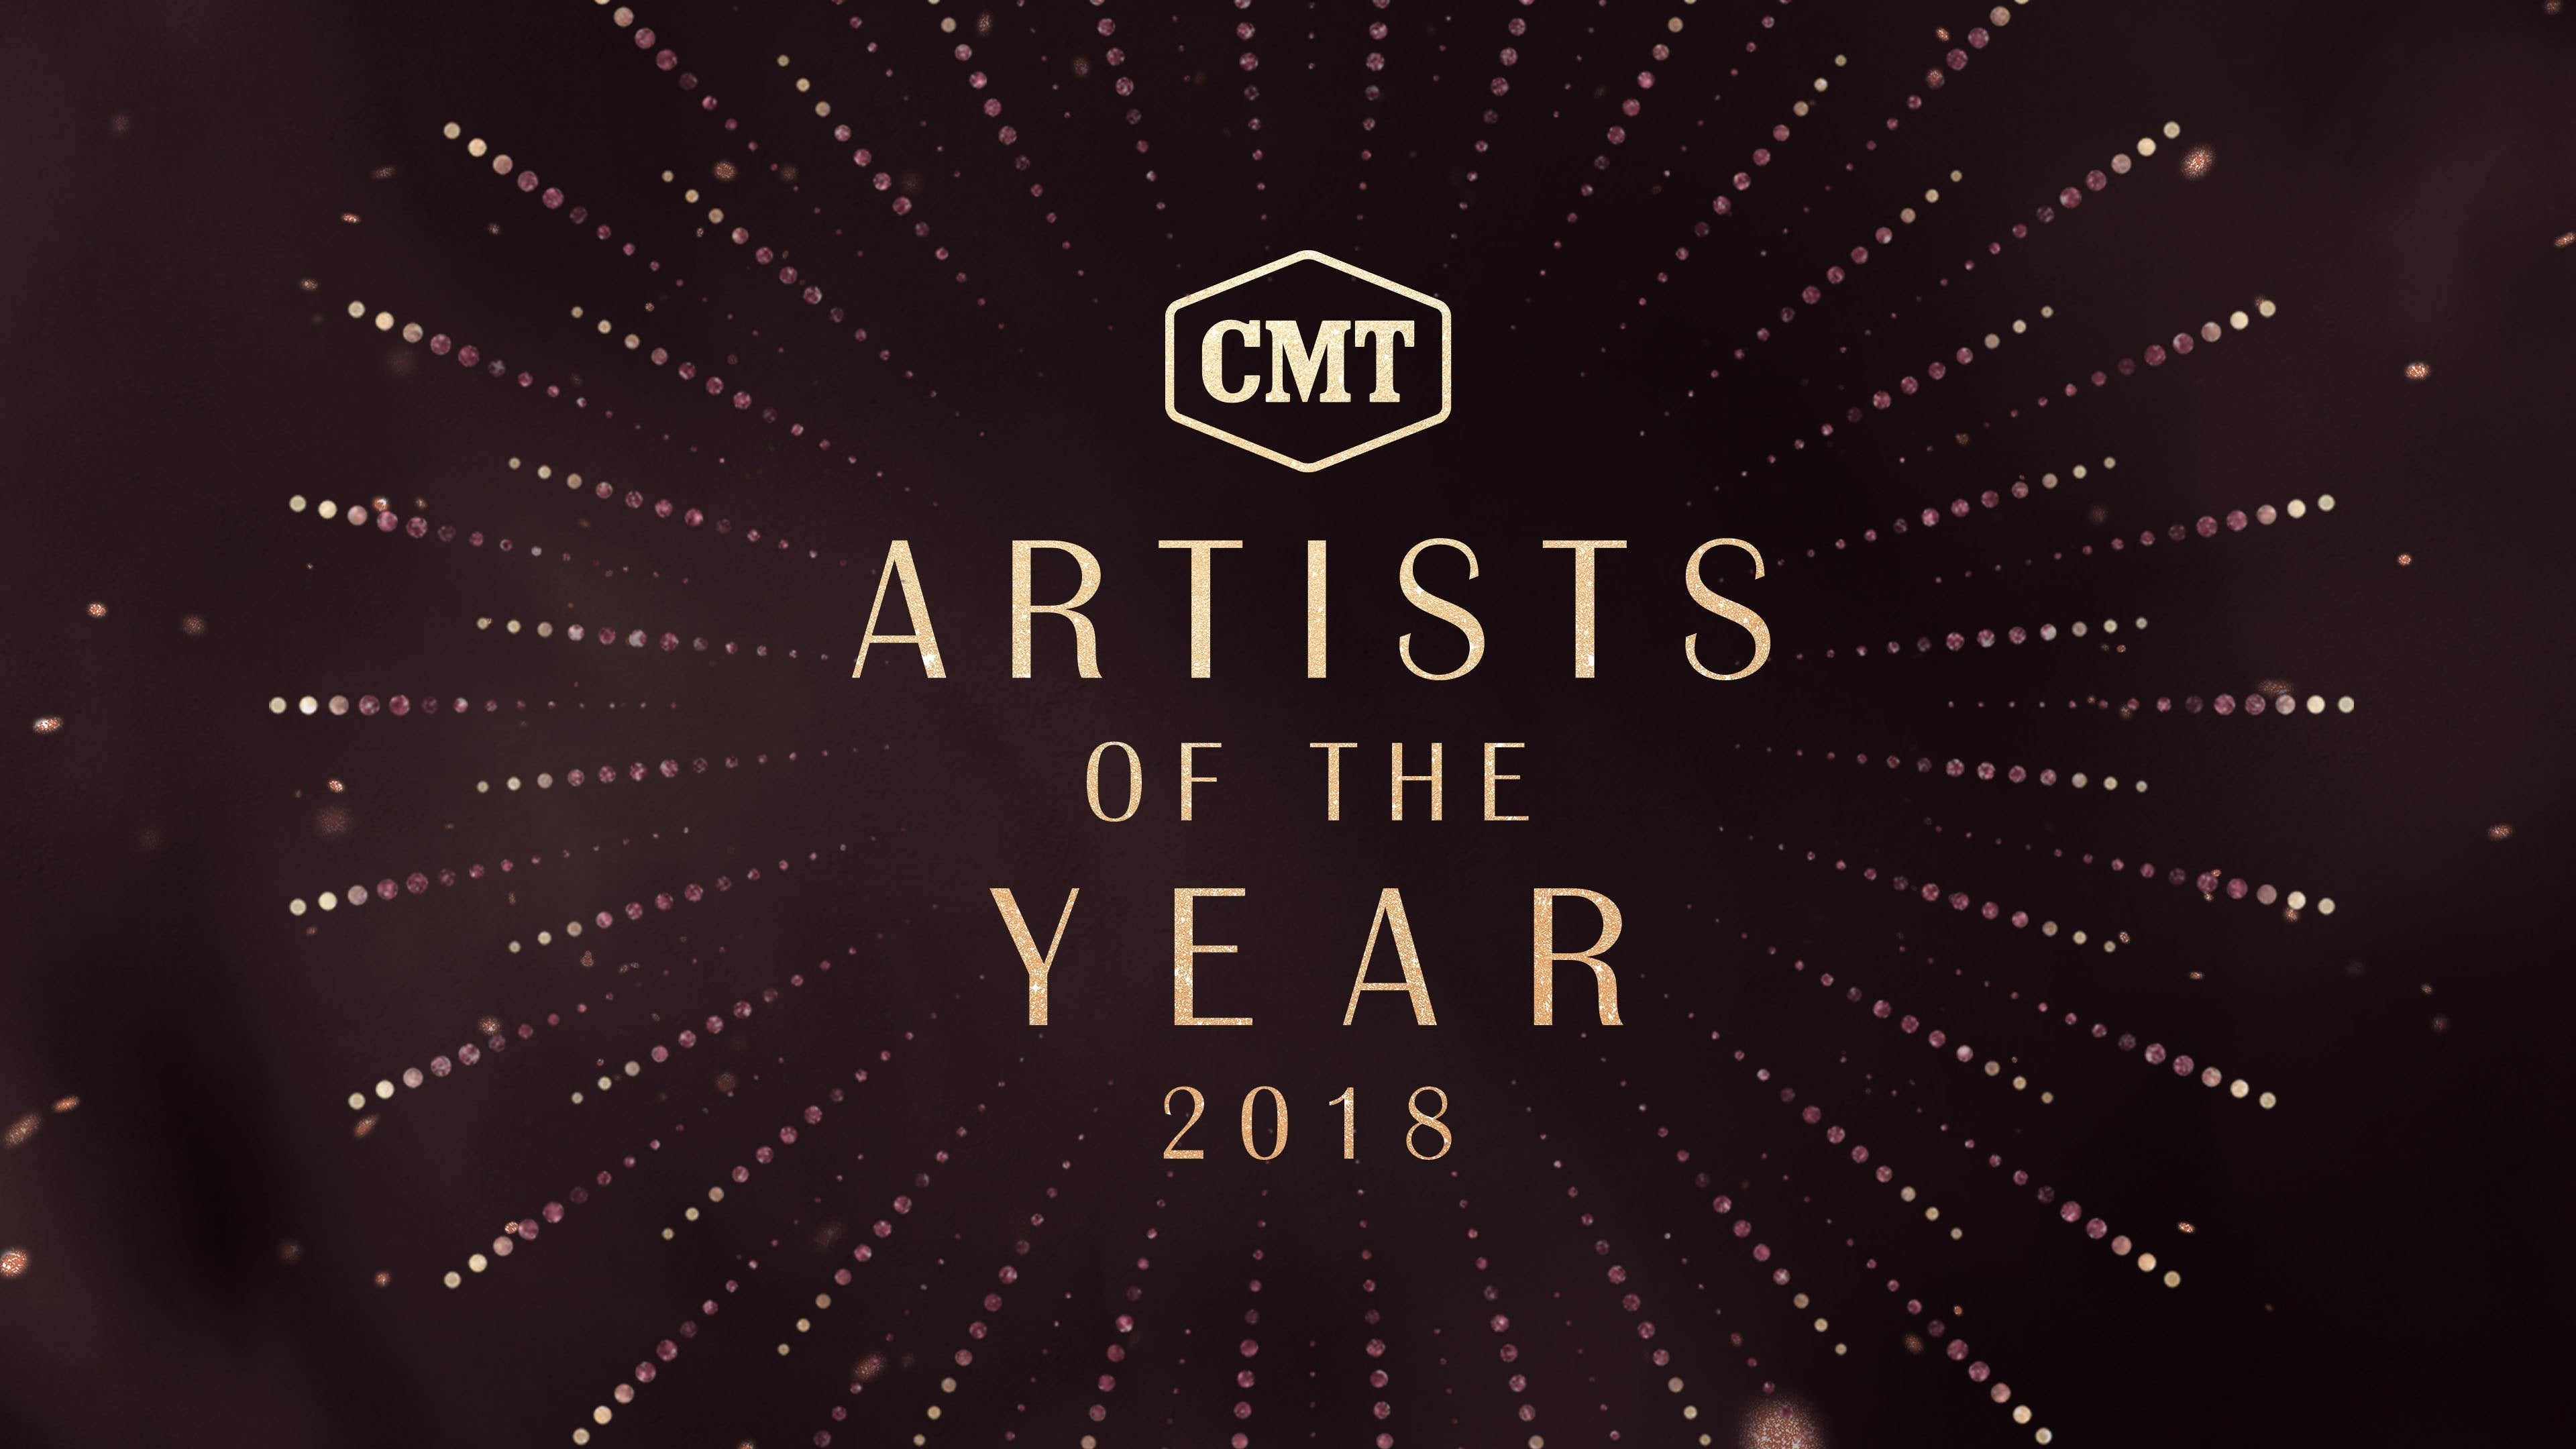 CMT Artists of the Year 2018